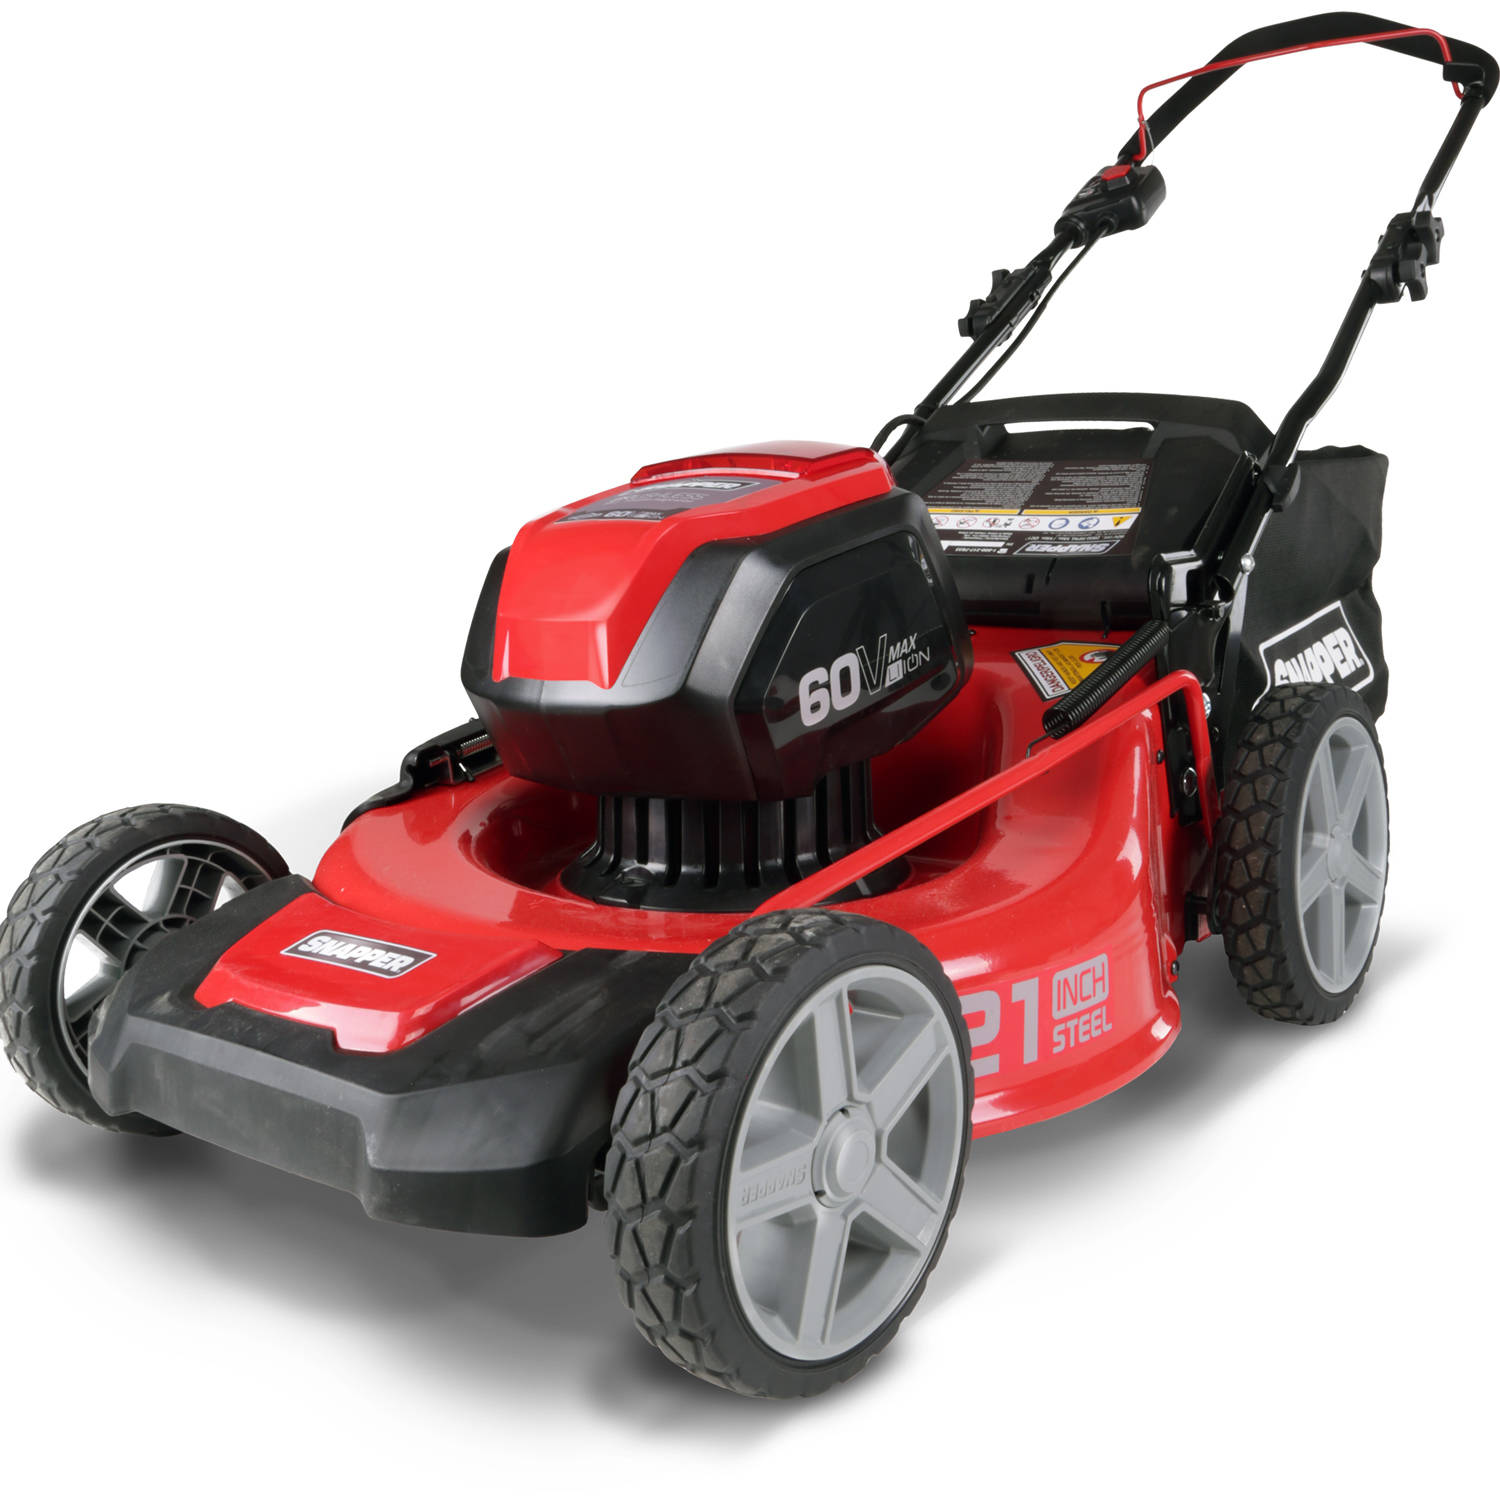 Snapper 60v Mower 4ah Battery and Charger Included SP60V Walmart